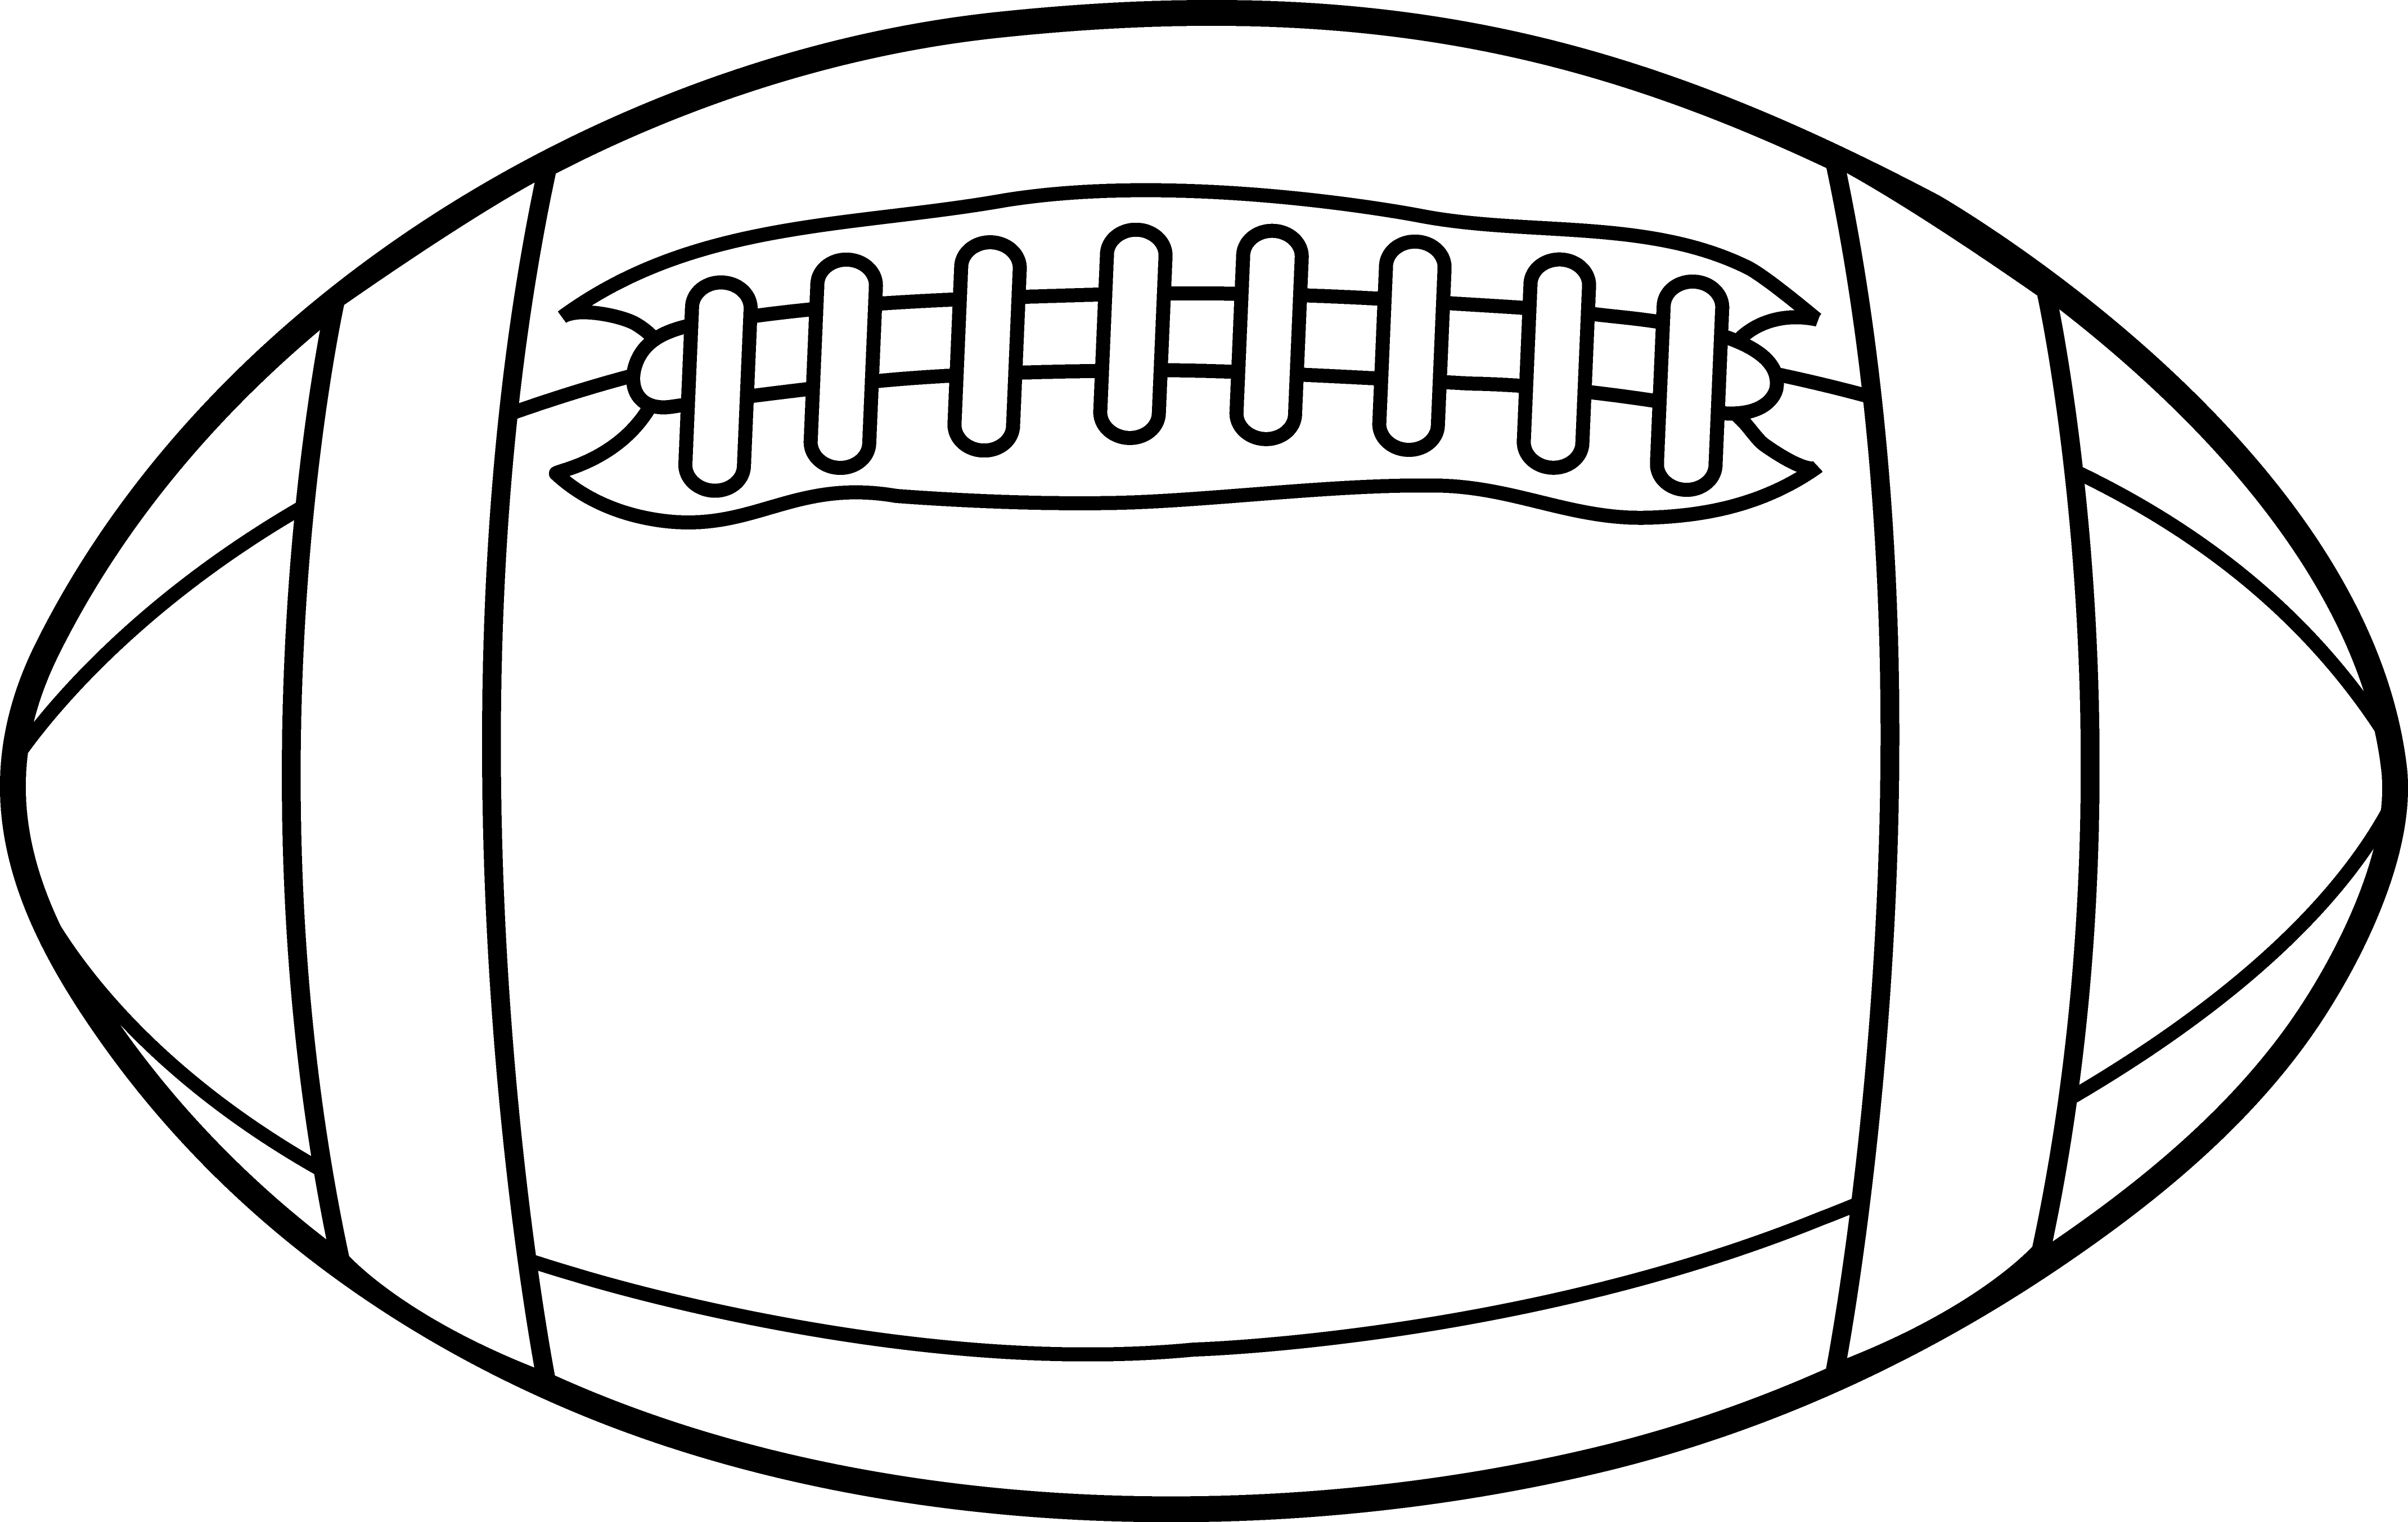 American football ball clipart clipart library download American Football Black And White Clipart clipart library download